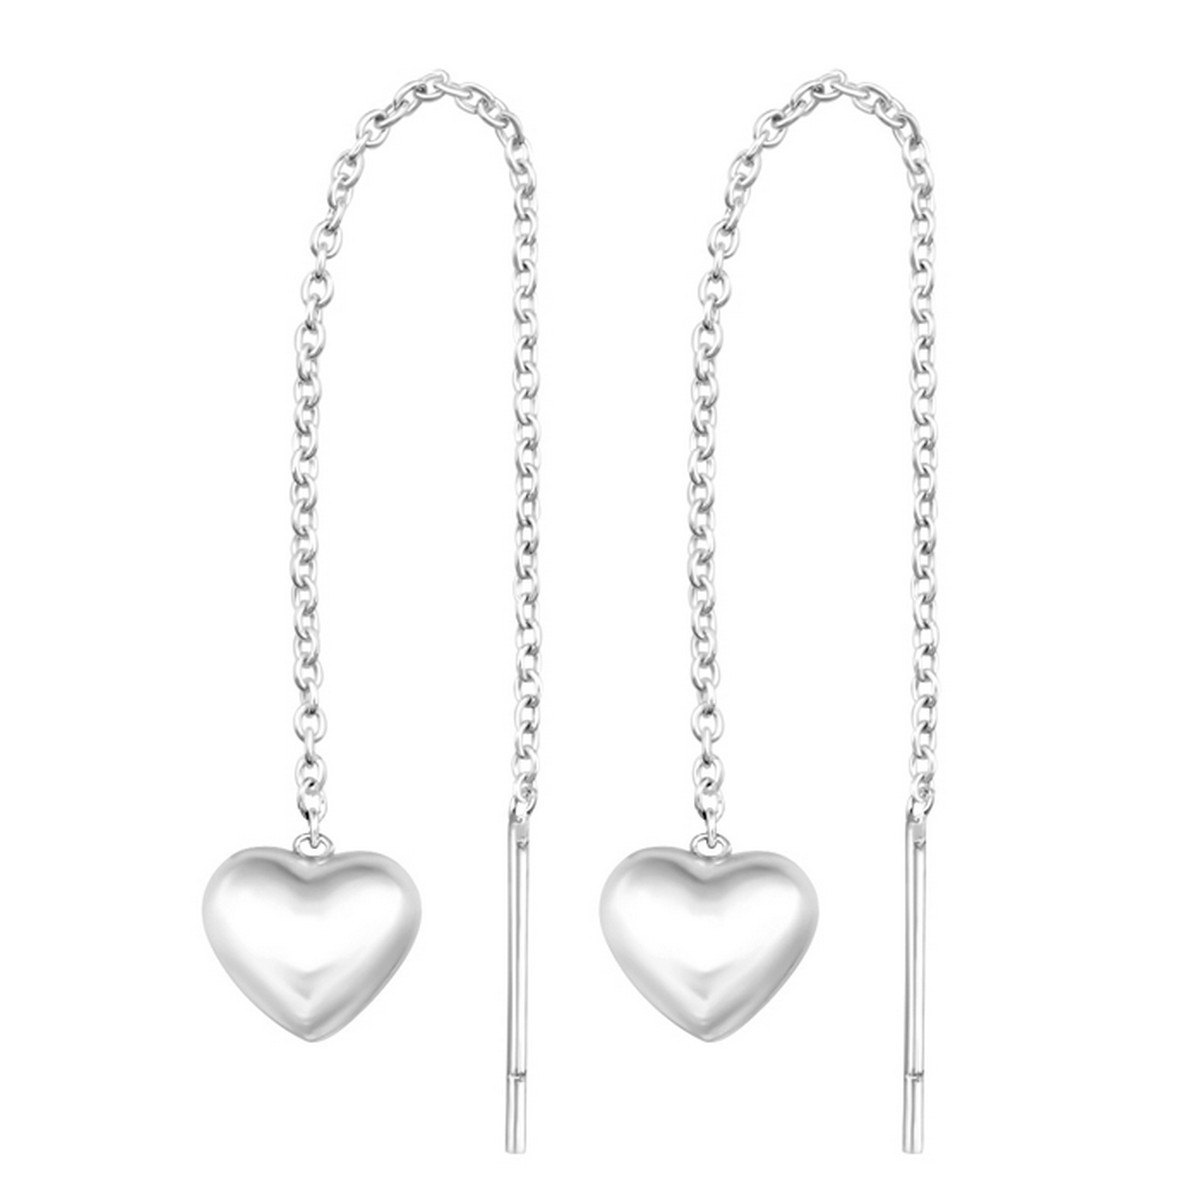 Heart Threaders | Oorbellen 925 zilver